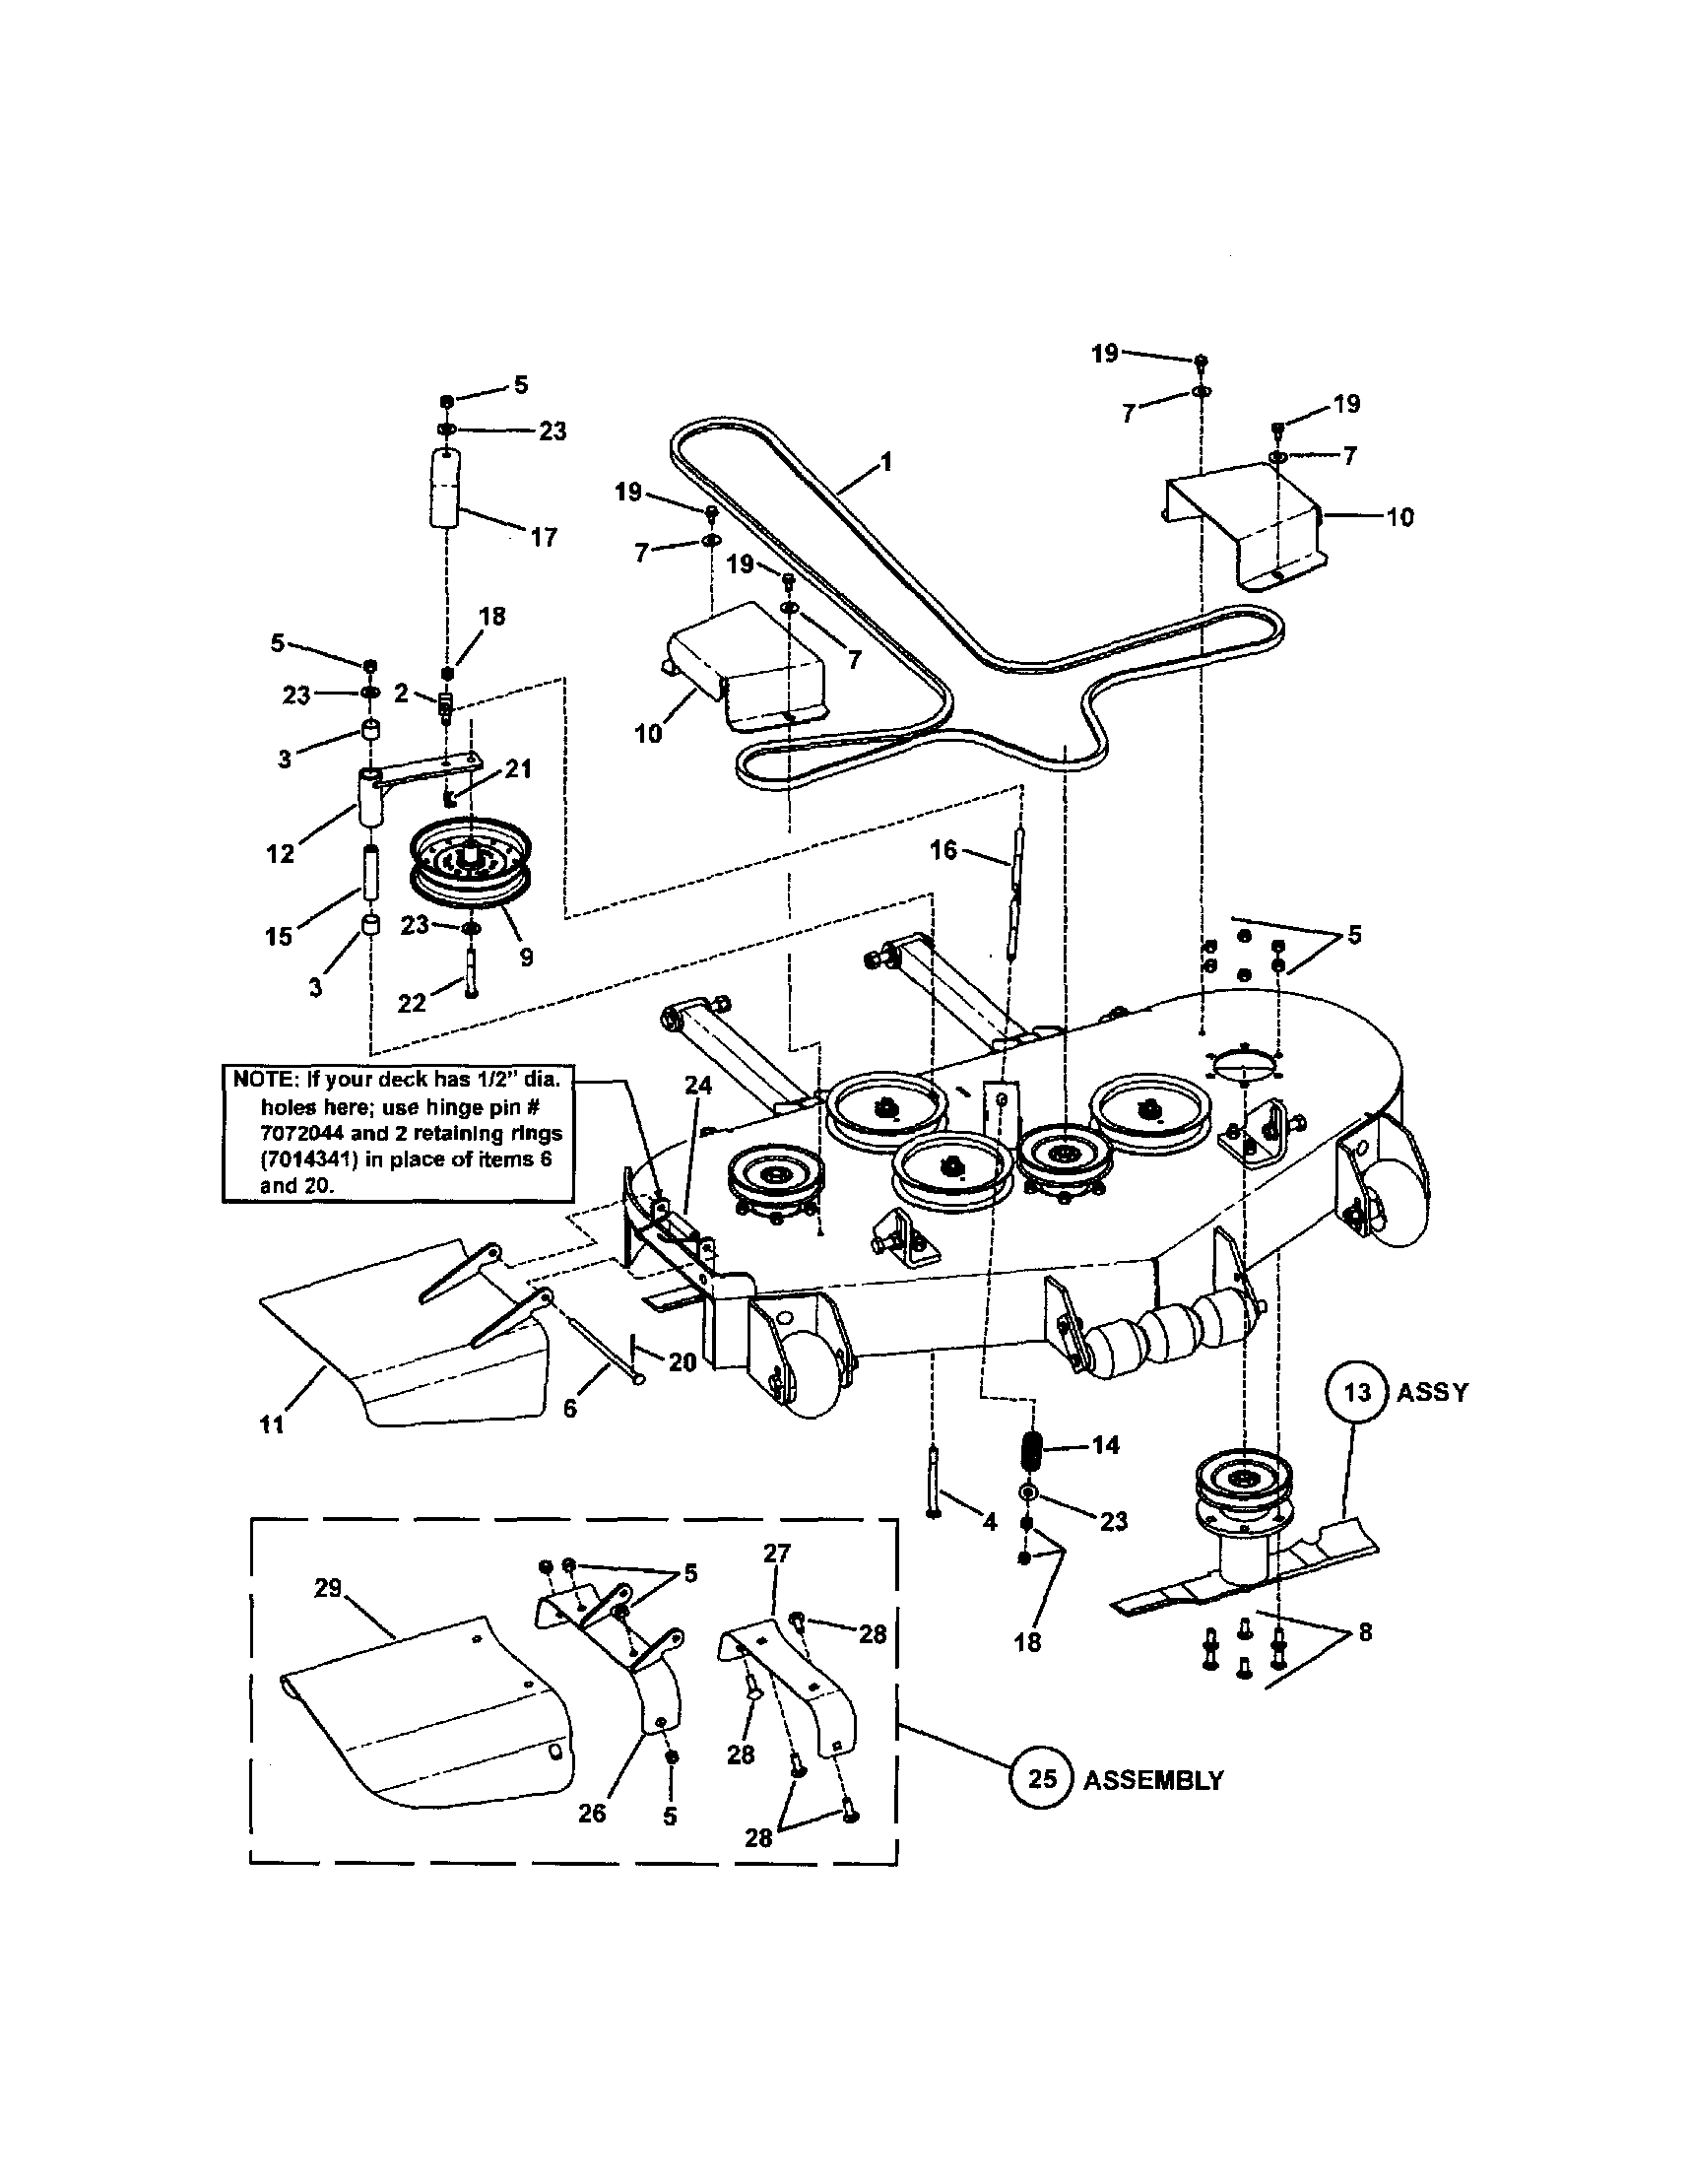 Snapper model czt19481kwv lawn riding mower rear engine genuine parts rh searspartsdirect dana 44 front axle diagram muscle spindle histology